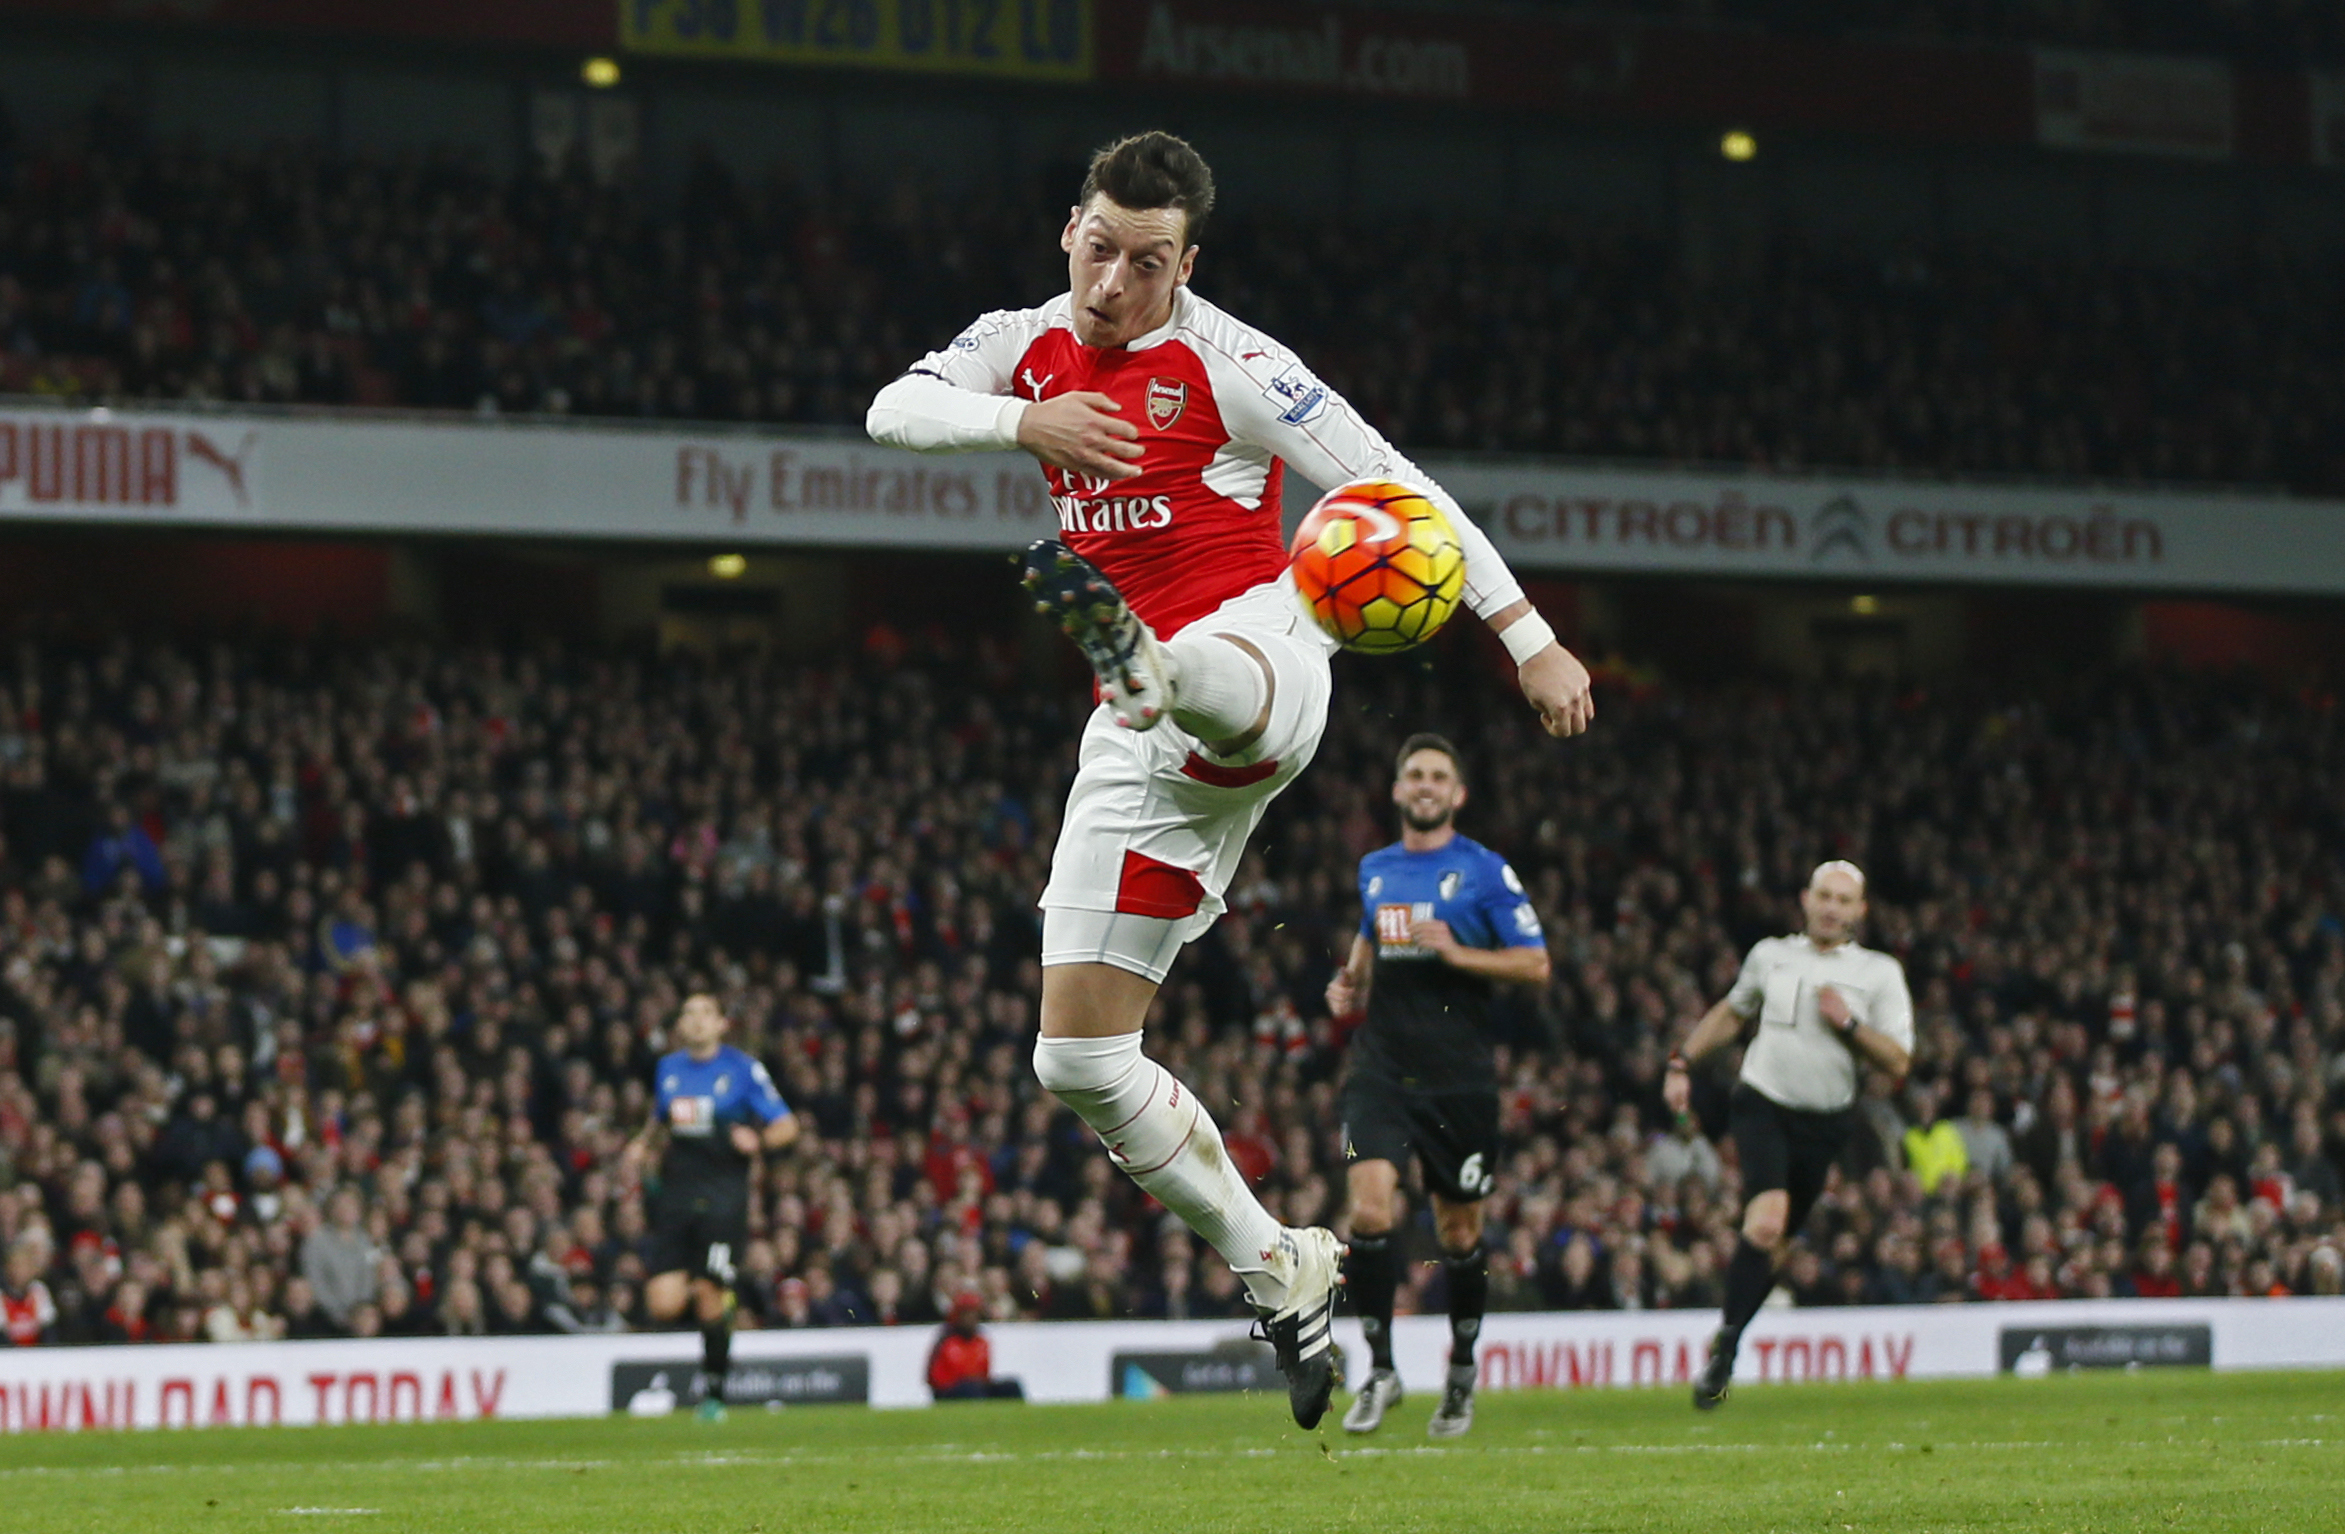 Arsenalu2019s Mesut Ozil controls the ball during their English Premier League match againstnBournemouth at the Emirates Stadium in London on Monday. Arsenal won the match 2-0.